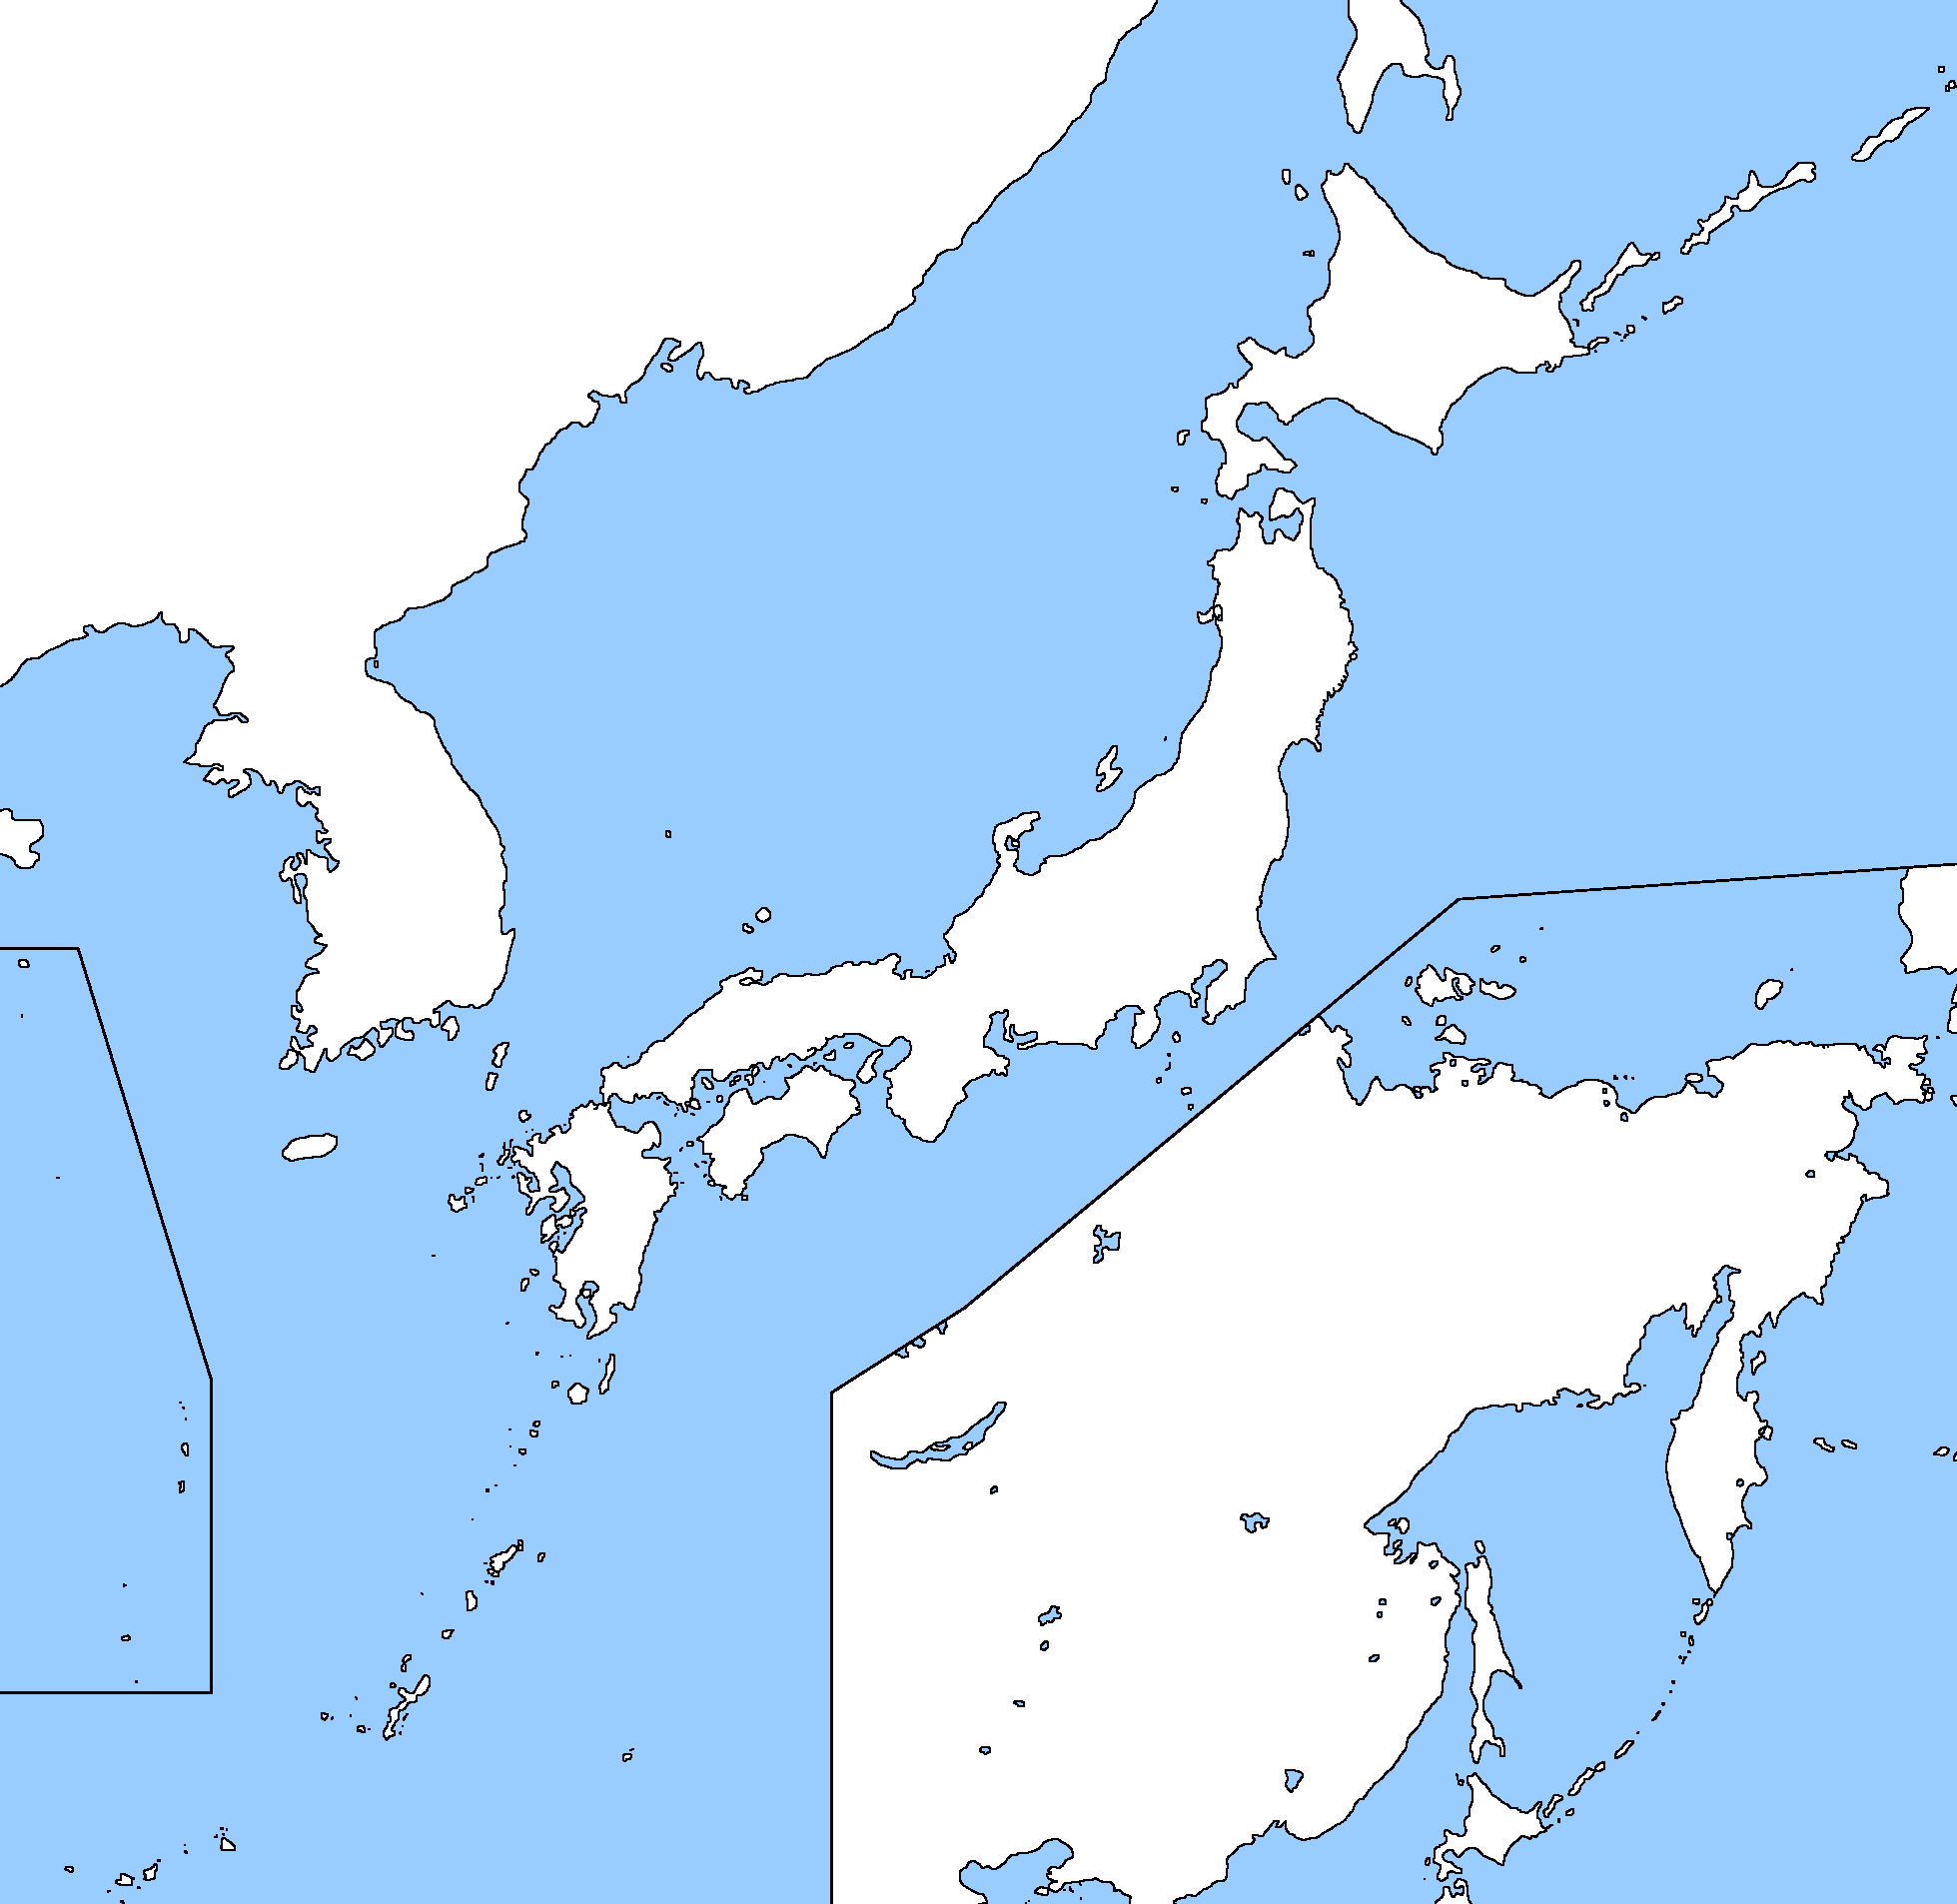 Image Blank Map Of Japan And Korea Including Russian Far East - Blank map of russia